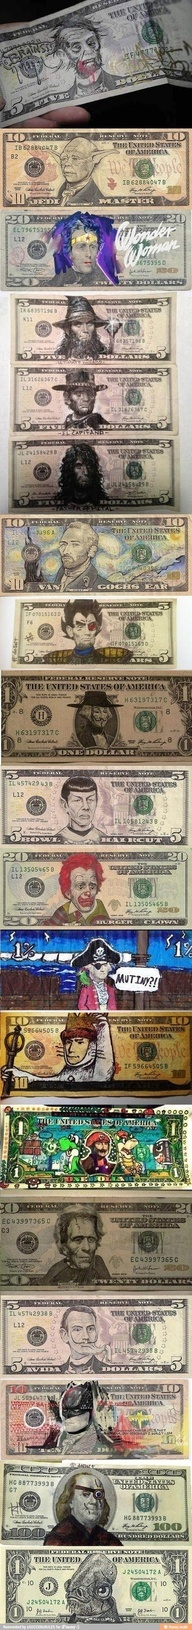 Currency Art Photo is cool. Beware of the attached site...